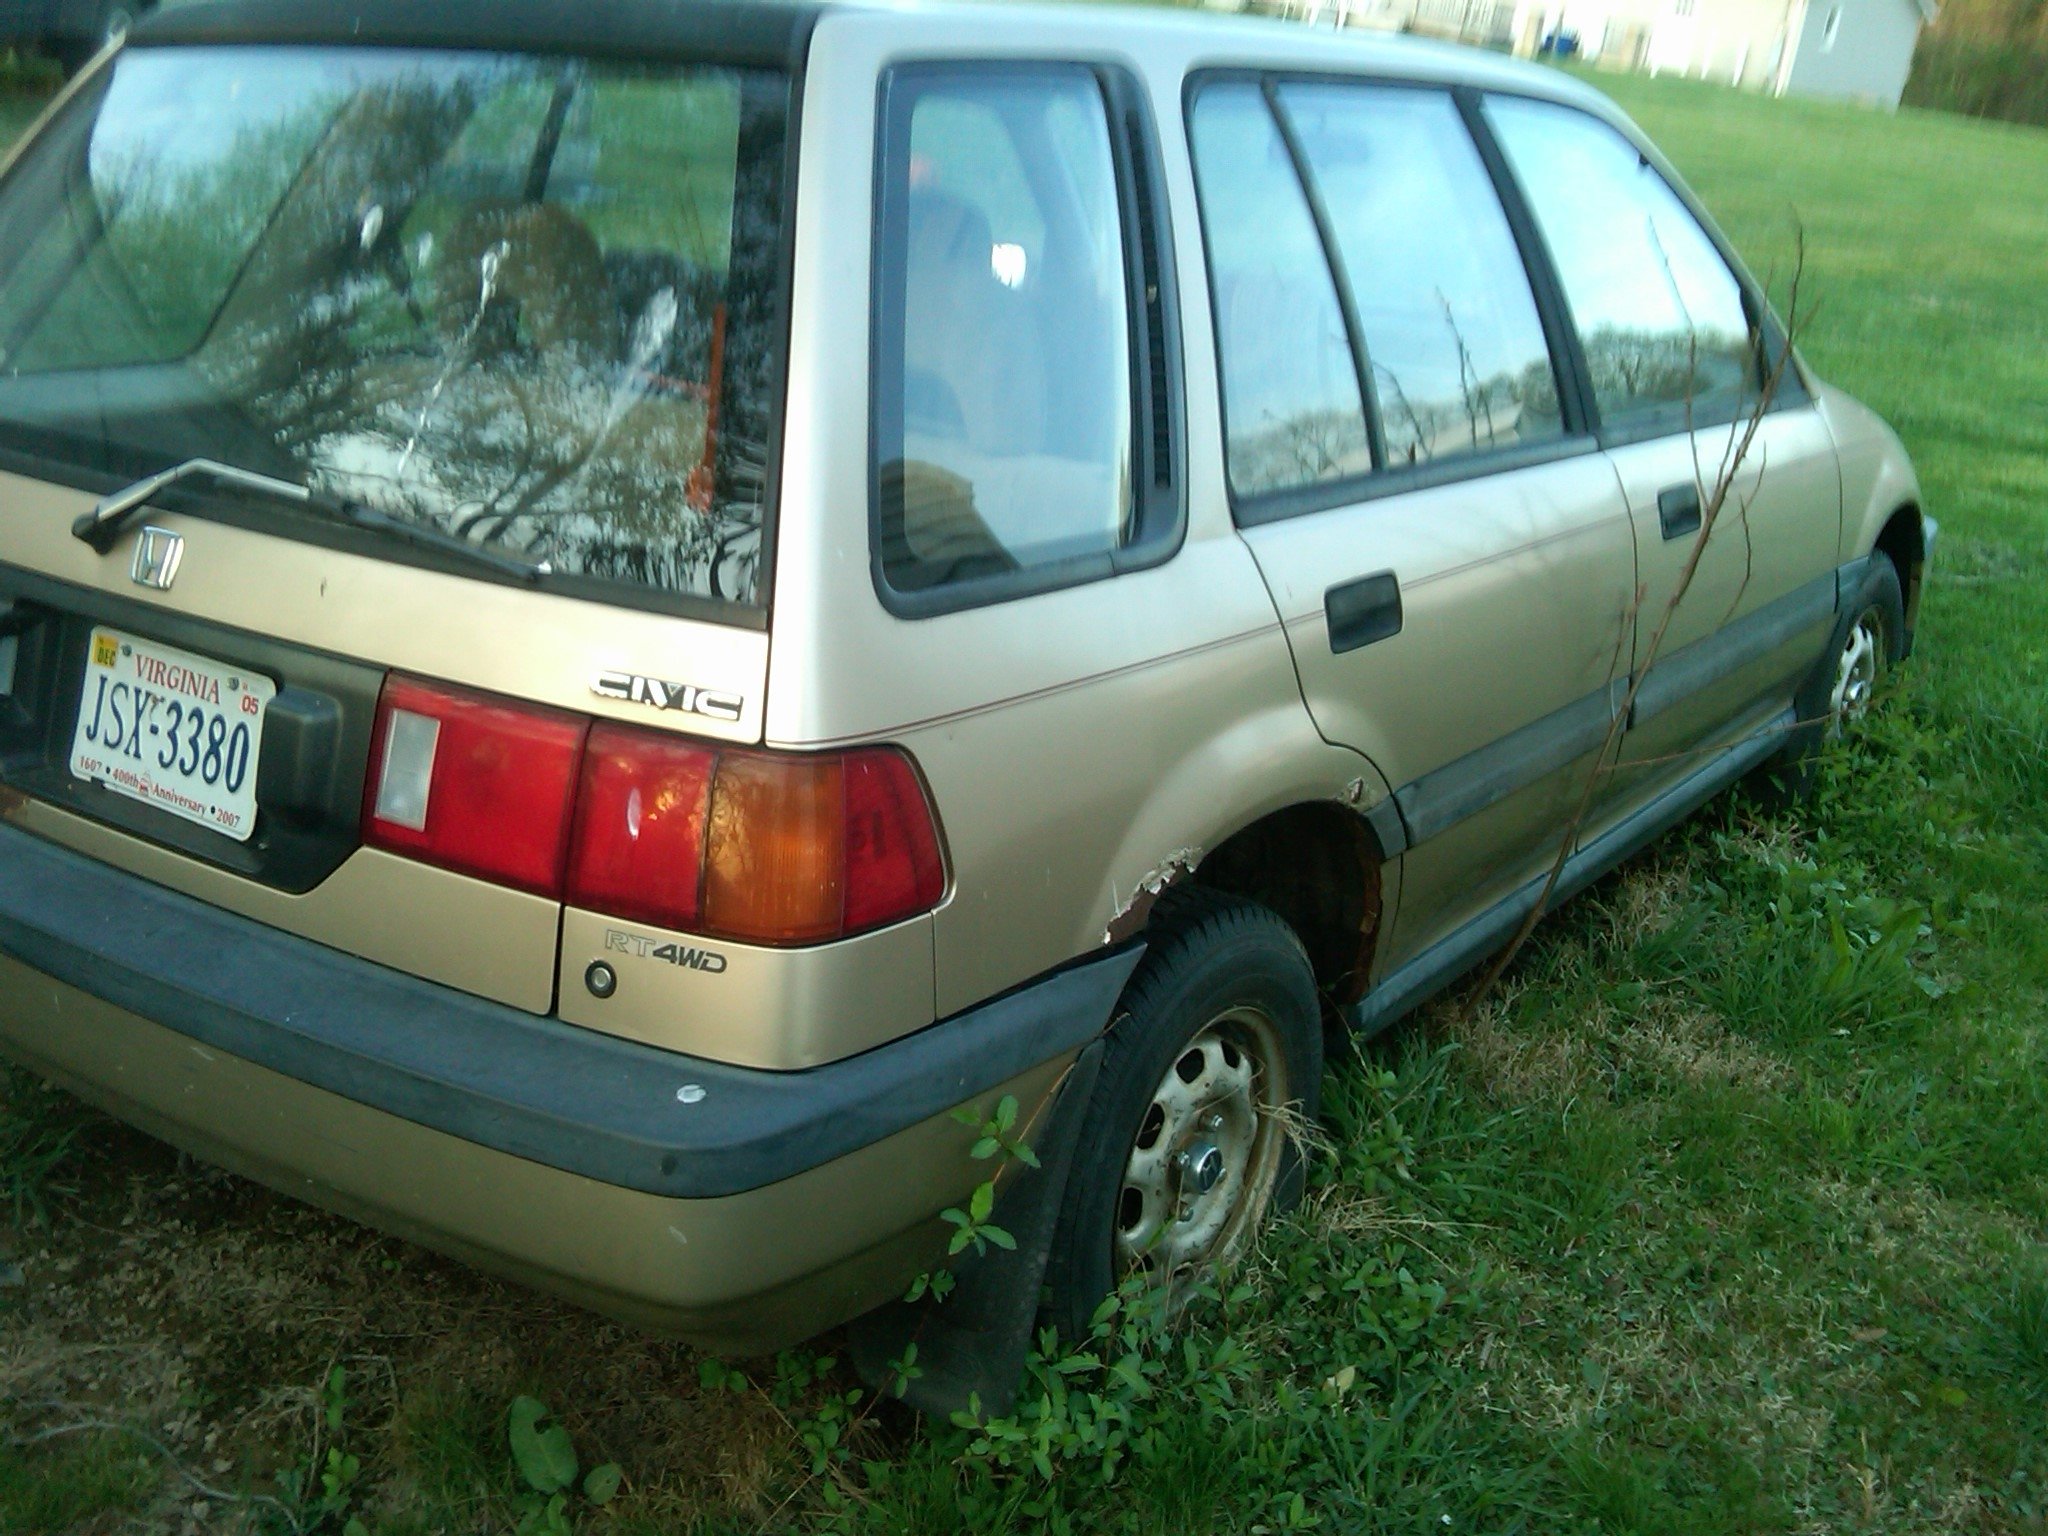 3rd4ce's 1988 Honda Civic